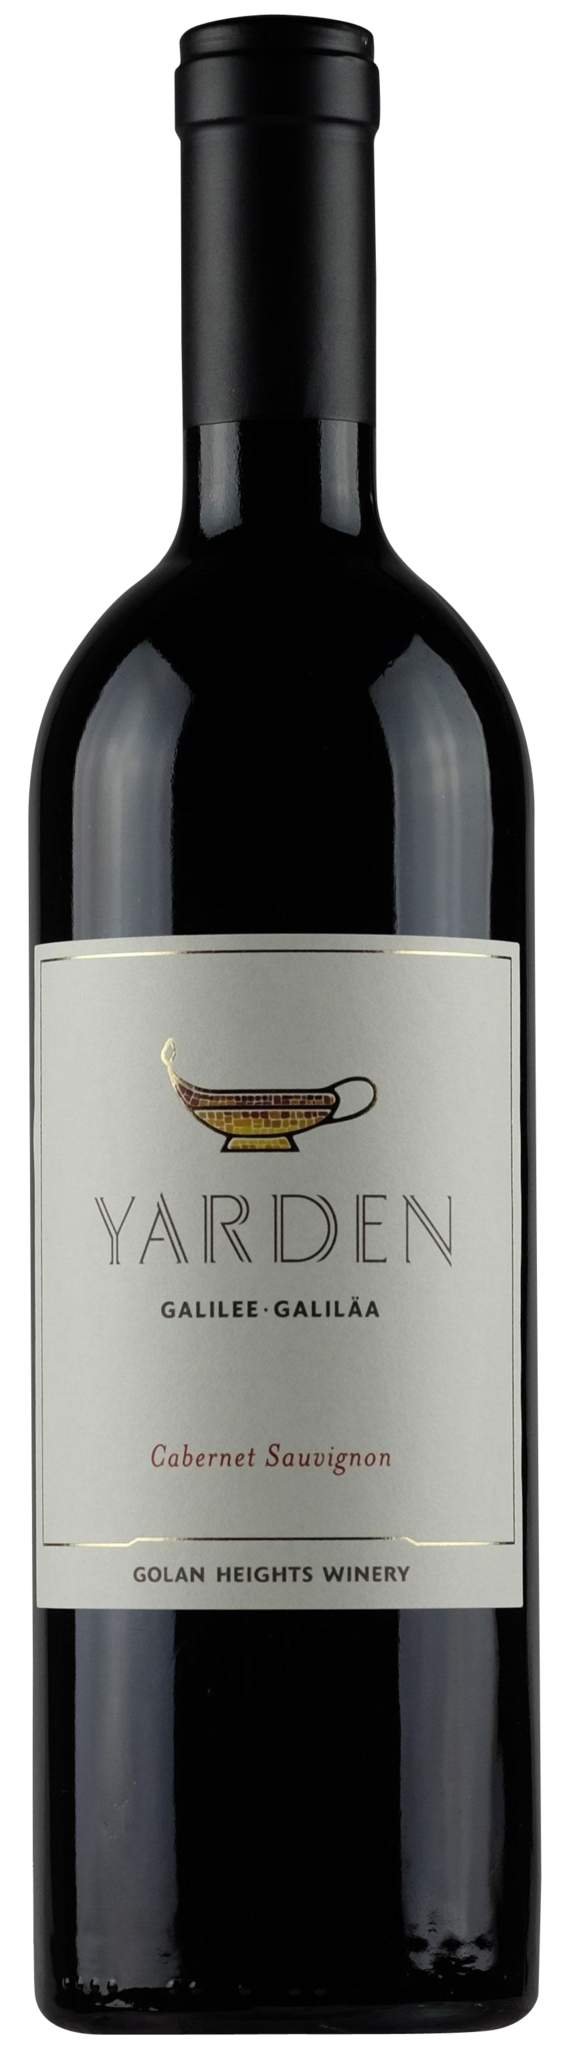 Golan Heights Winery Yarden Cabernet Sauvignon картон